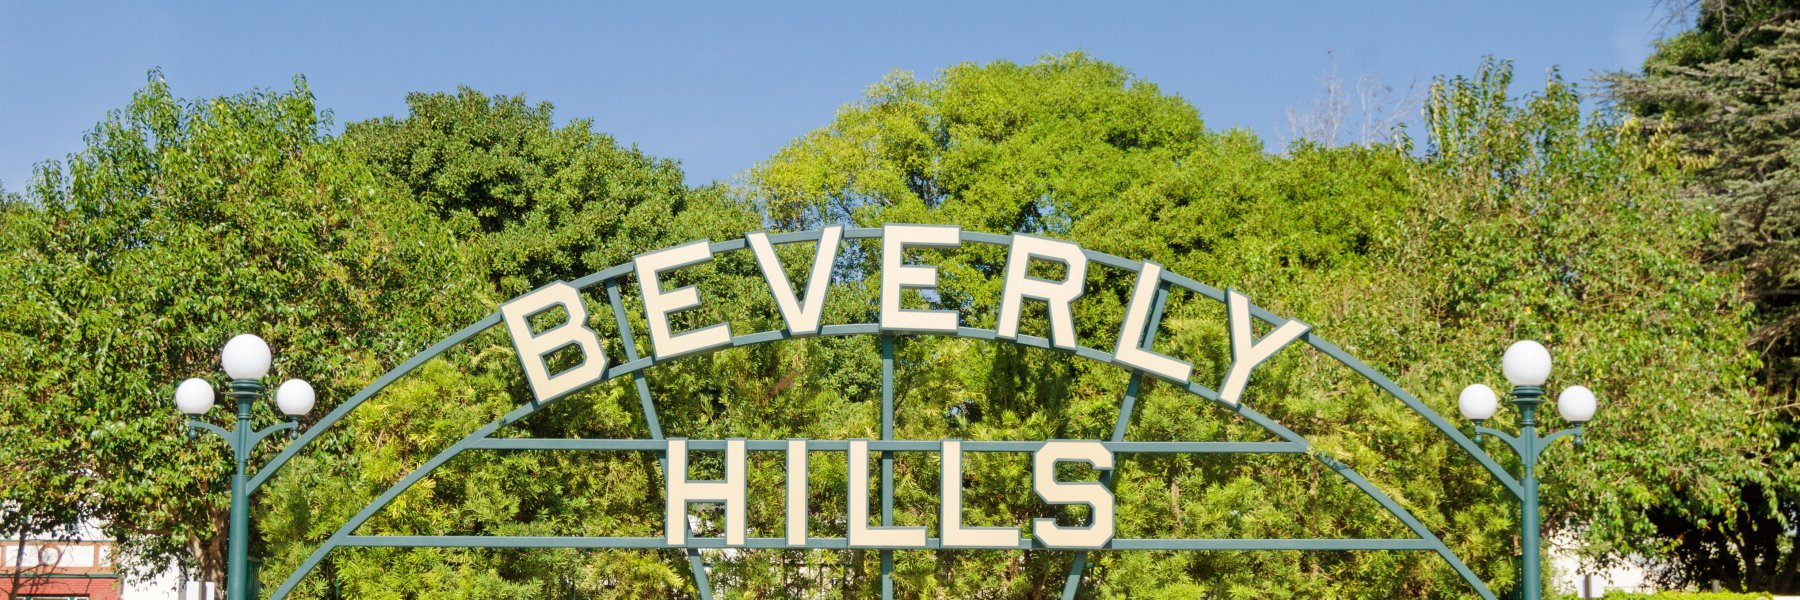 Beverly Hills Flats is a community of homes in Beverly Hills California